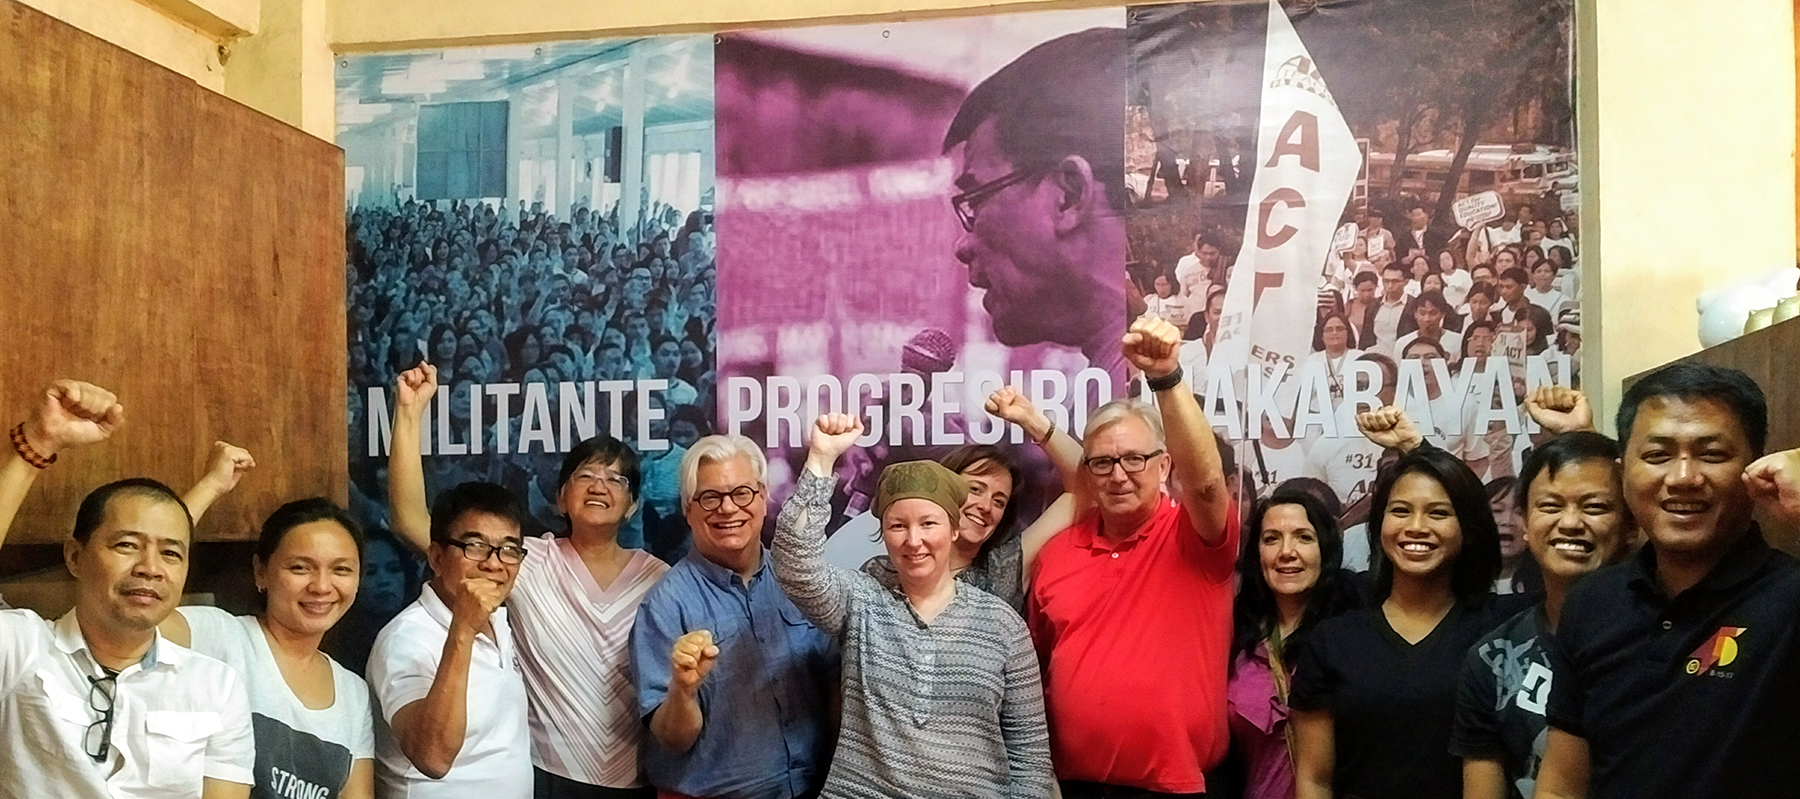 CUPE visit highlights struggle to defend human rights and public services in Philippines